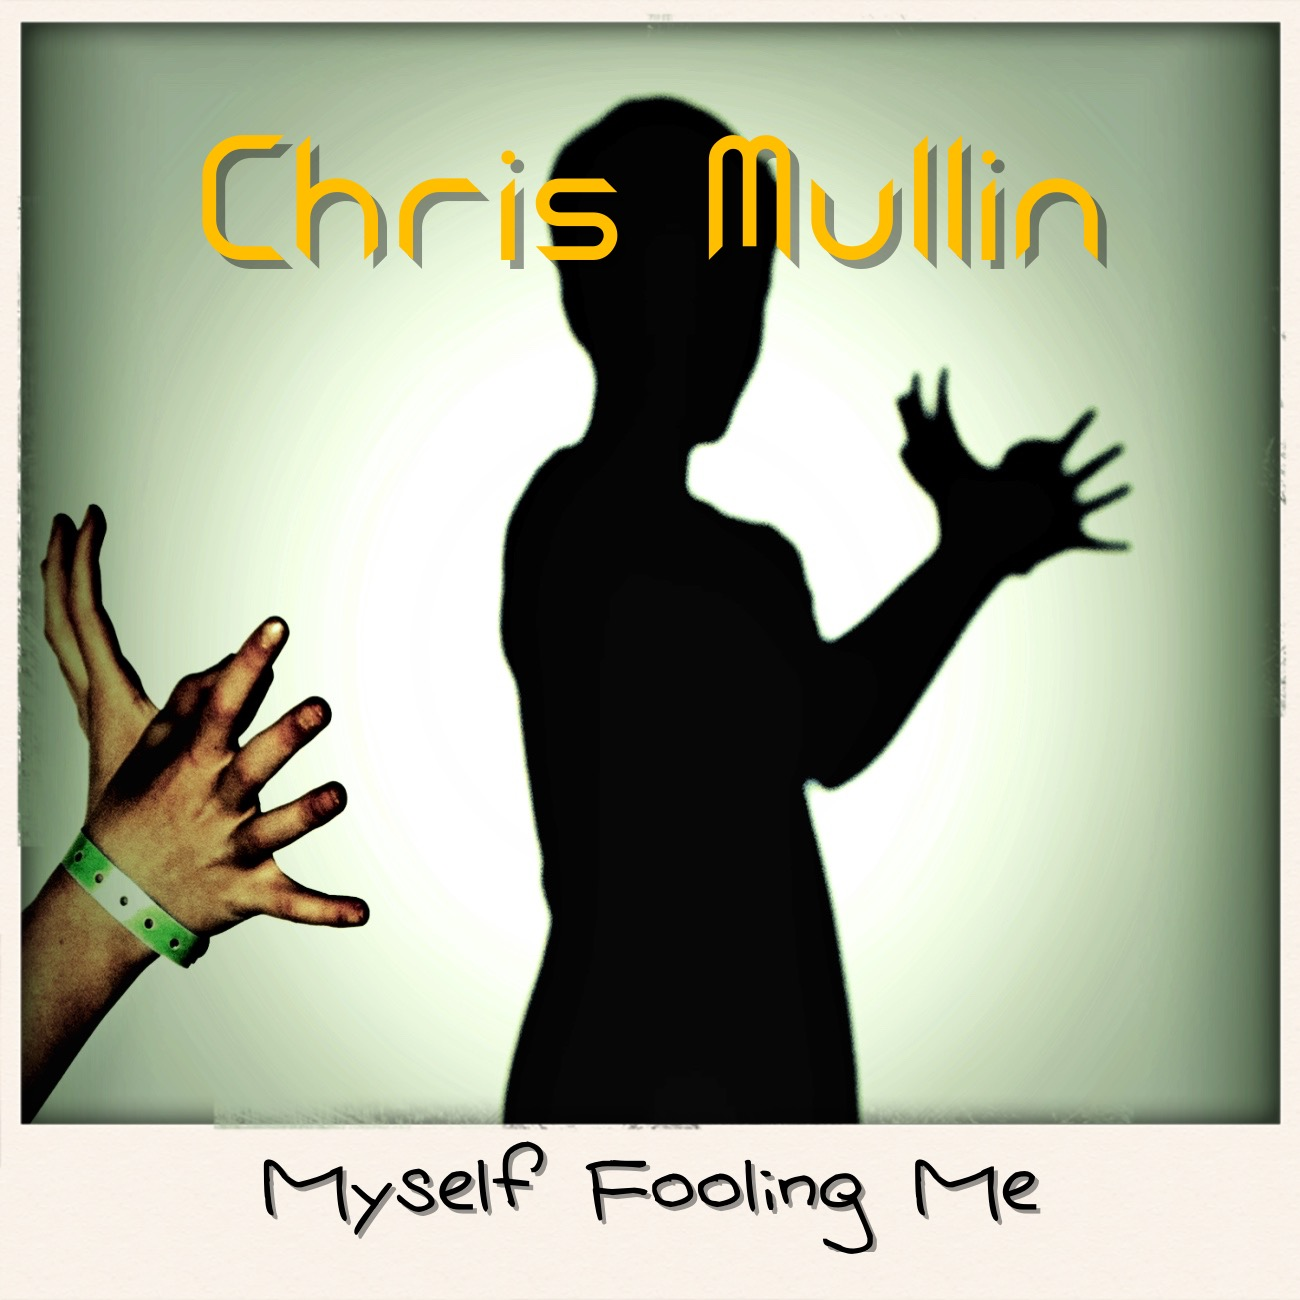 Chris_Mullin_Myself_Fooling_Me_cover